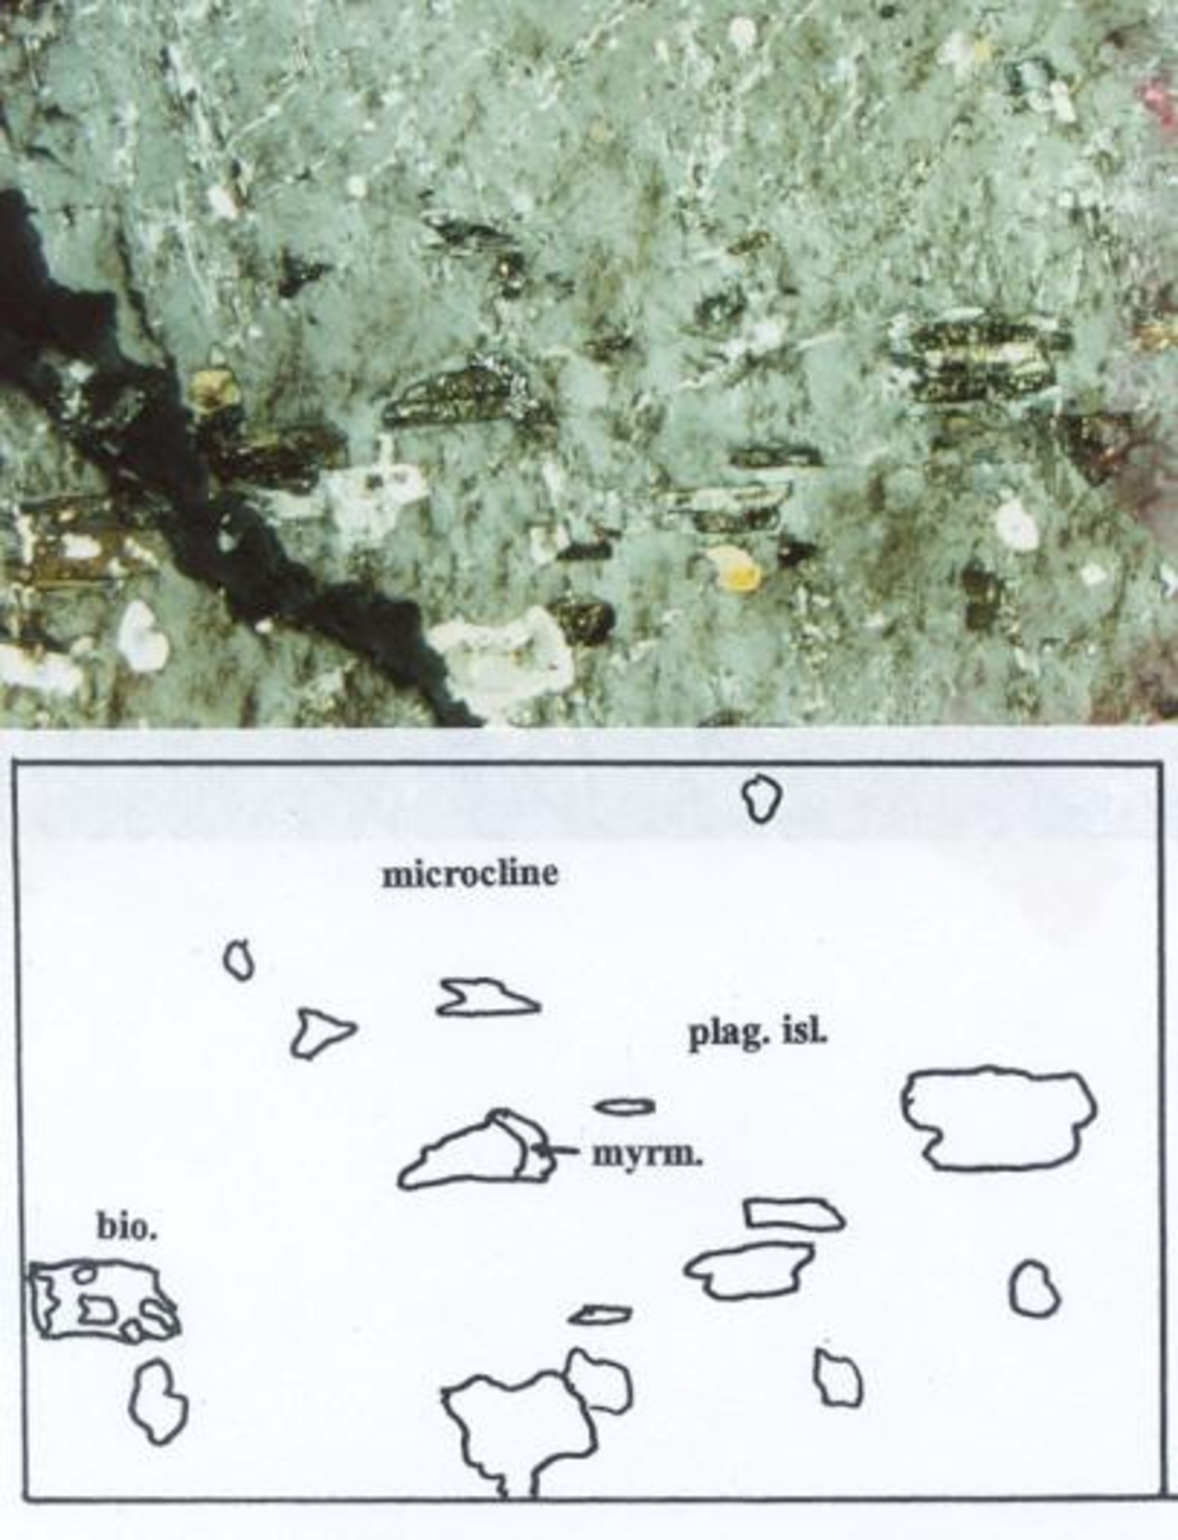 Fig. 10. Portion of perthitic microcline megacryst (light gray) with parallelaligned, albite-twinned, tiny plagioclase inclusions, some of which are bordered by myrmekite with very tiny quartz vermicules (center). Biotite inclusion (left side) is partly replaced by quartz.